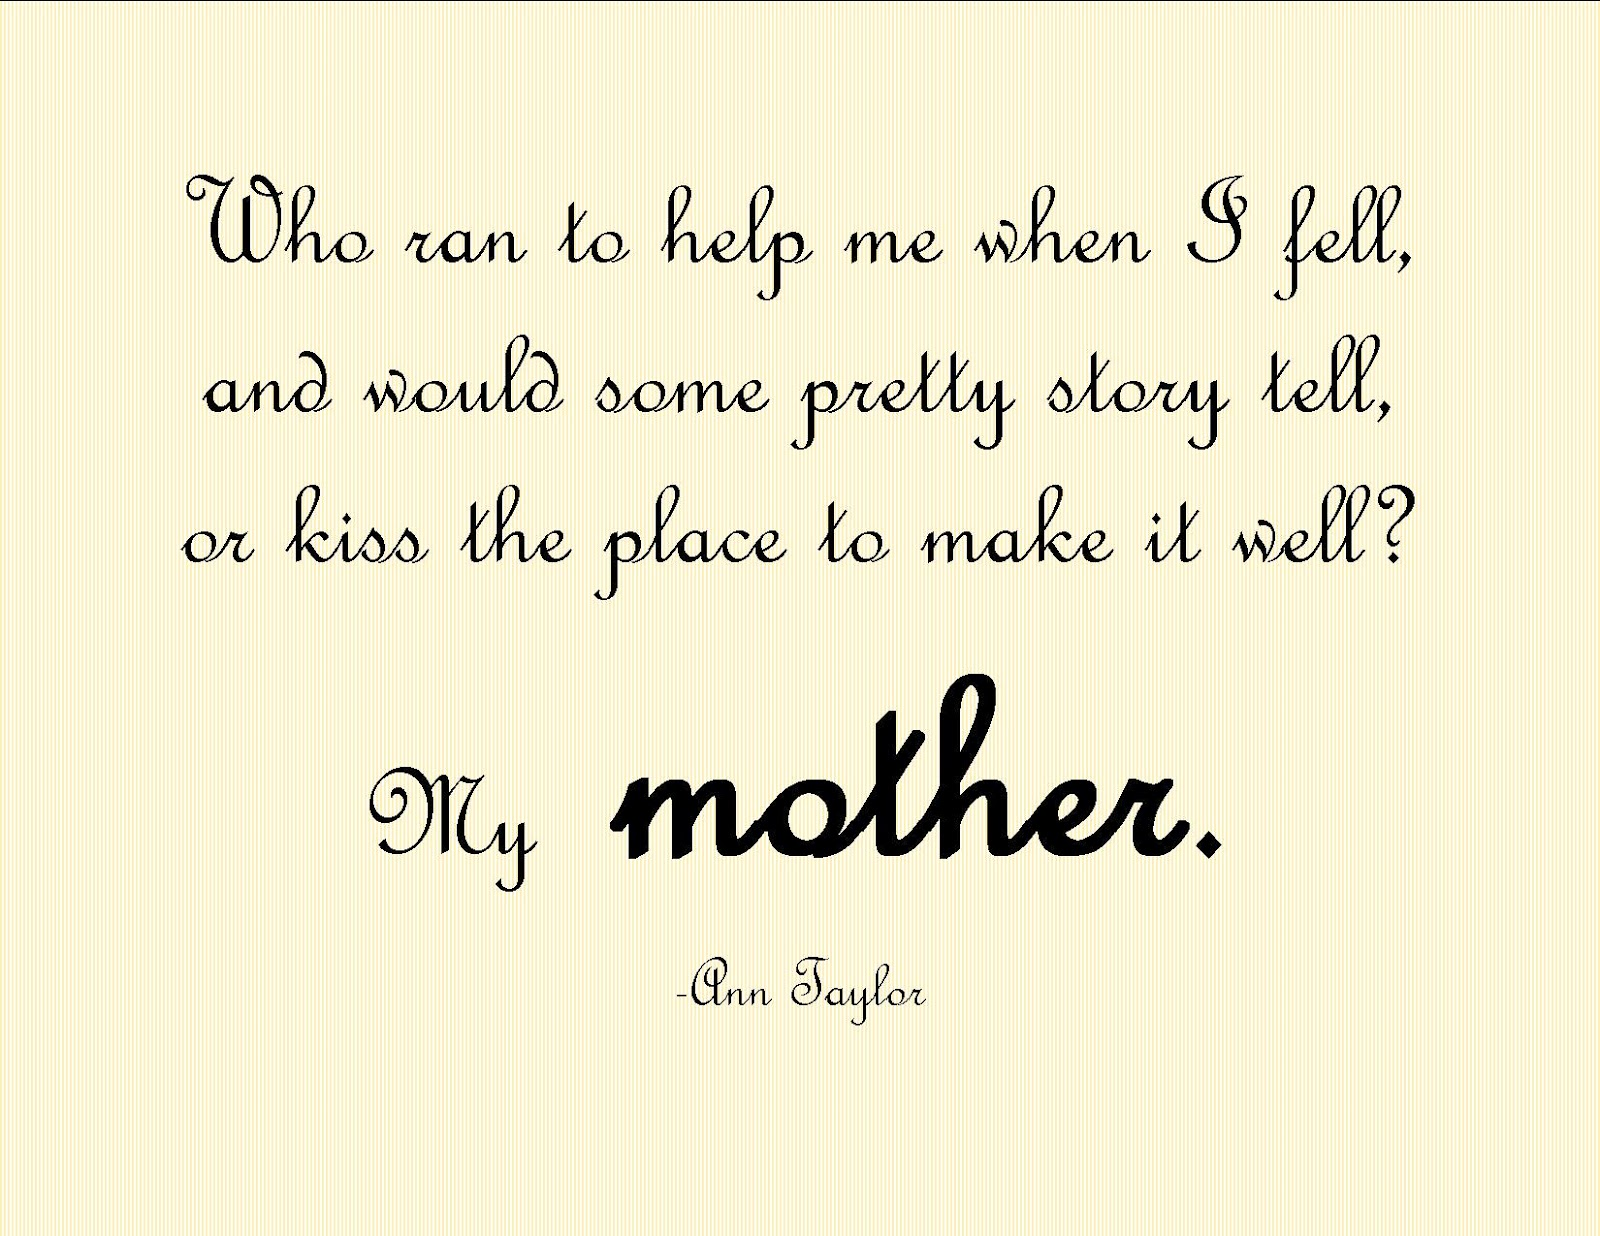 Mother Love Quotes Wallpaper : Love Quotes for Him tumblr for her and sayings tagalog images wallpapers photos : Mother Love ...